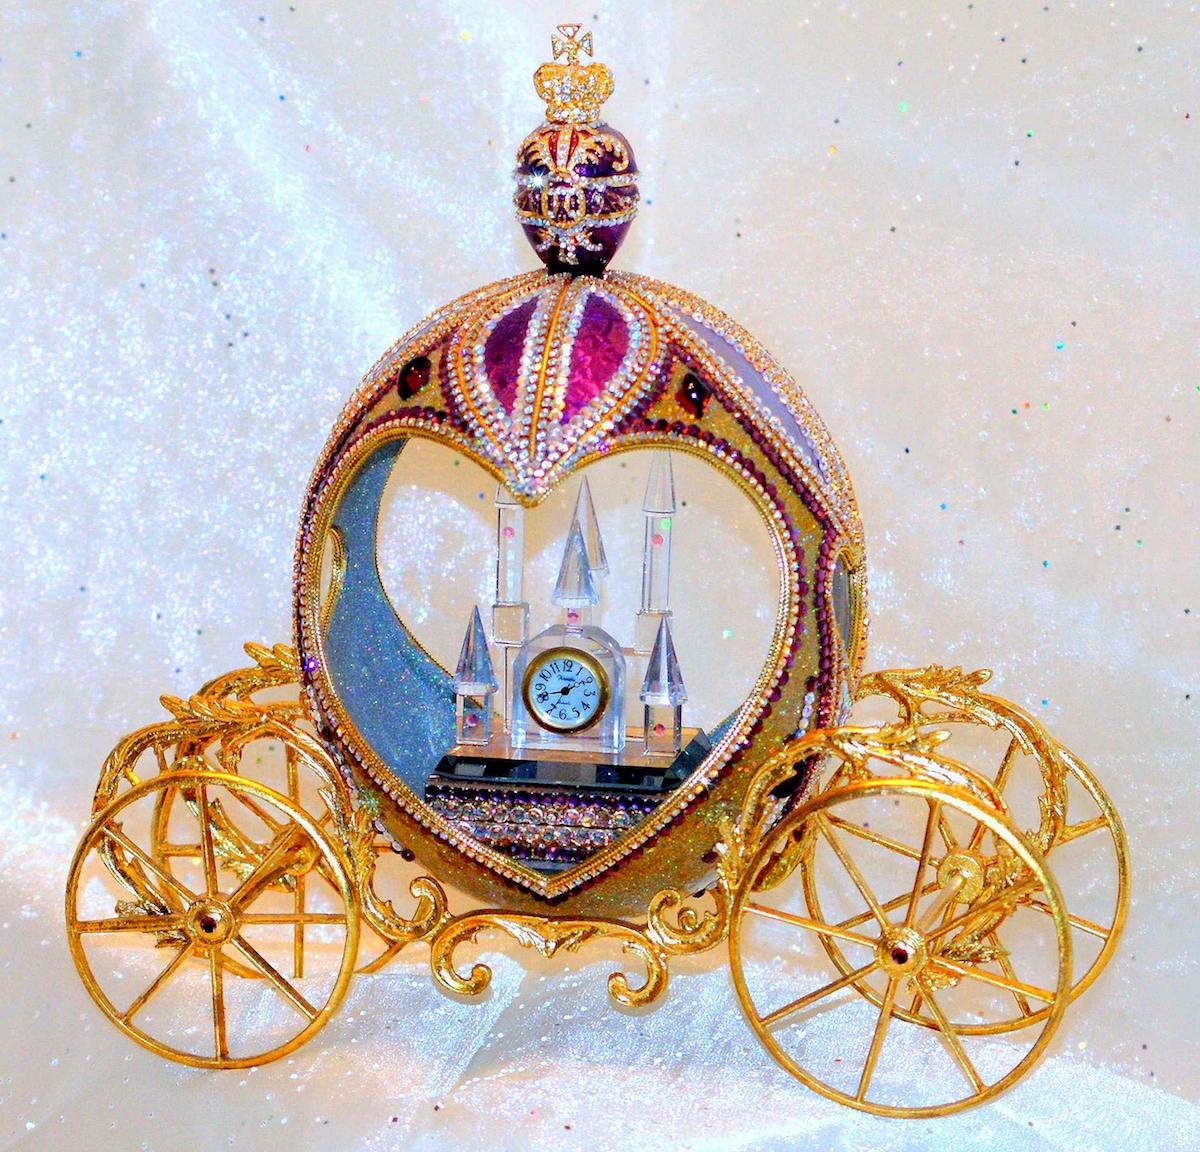 Title The Queen's Carriage Medium Ostrich egg Size 8 inch x 8 inch x 6 inch